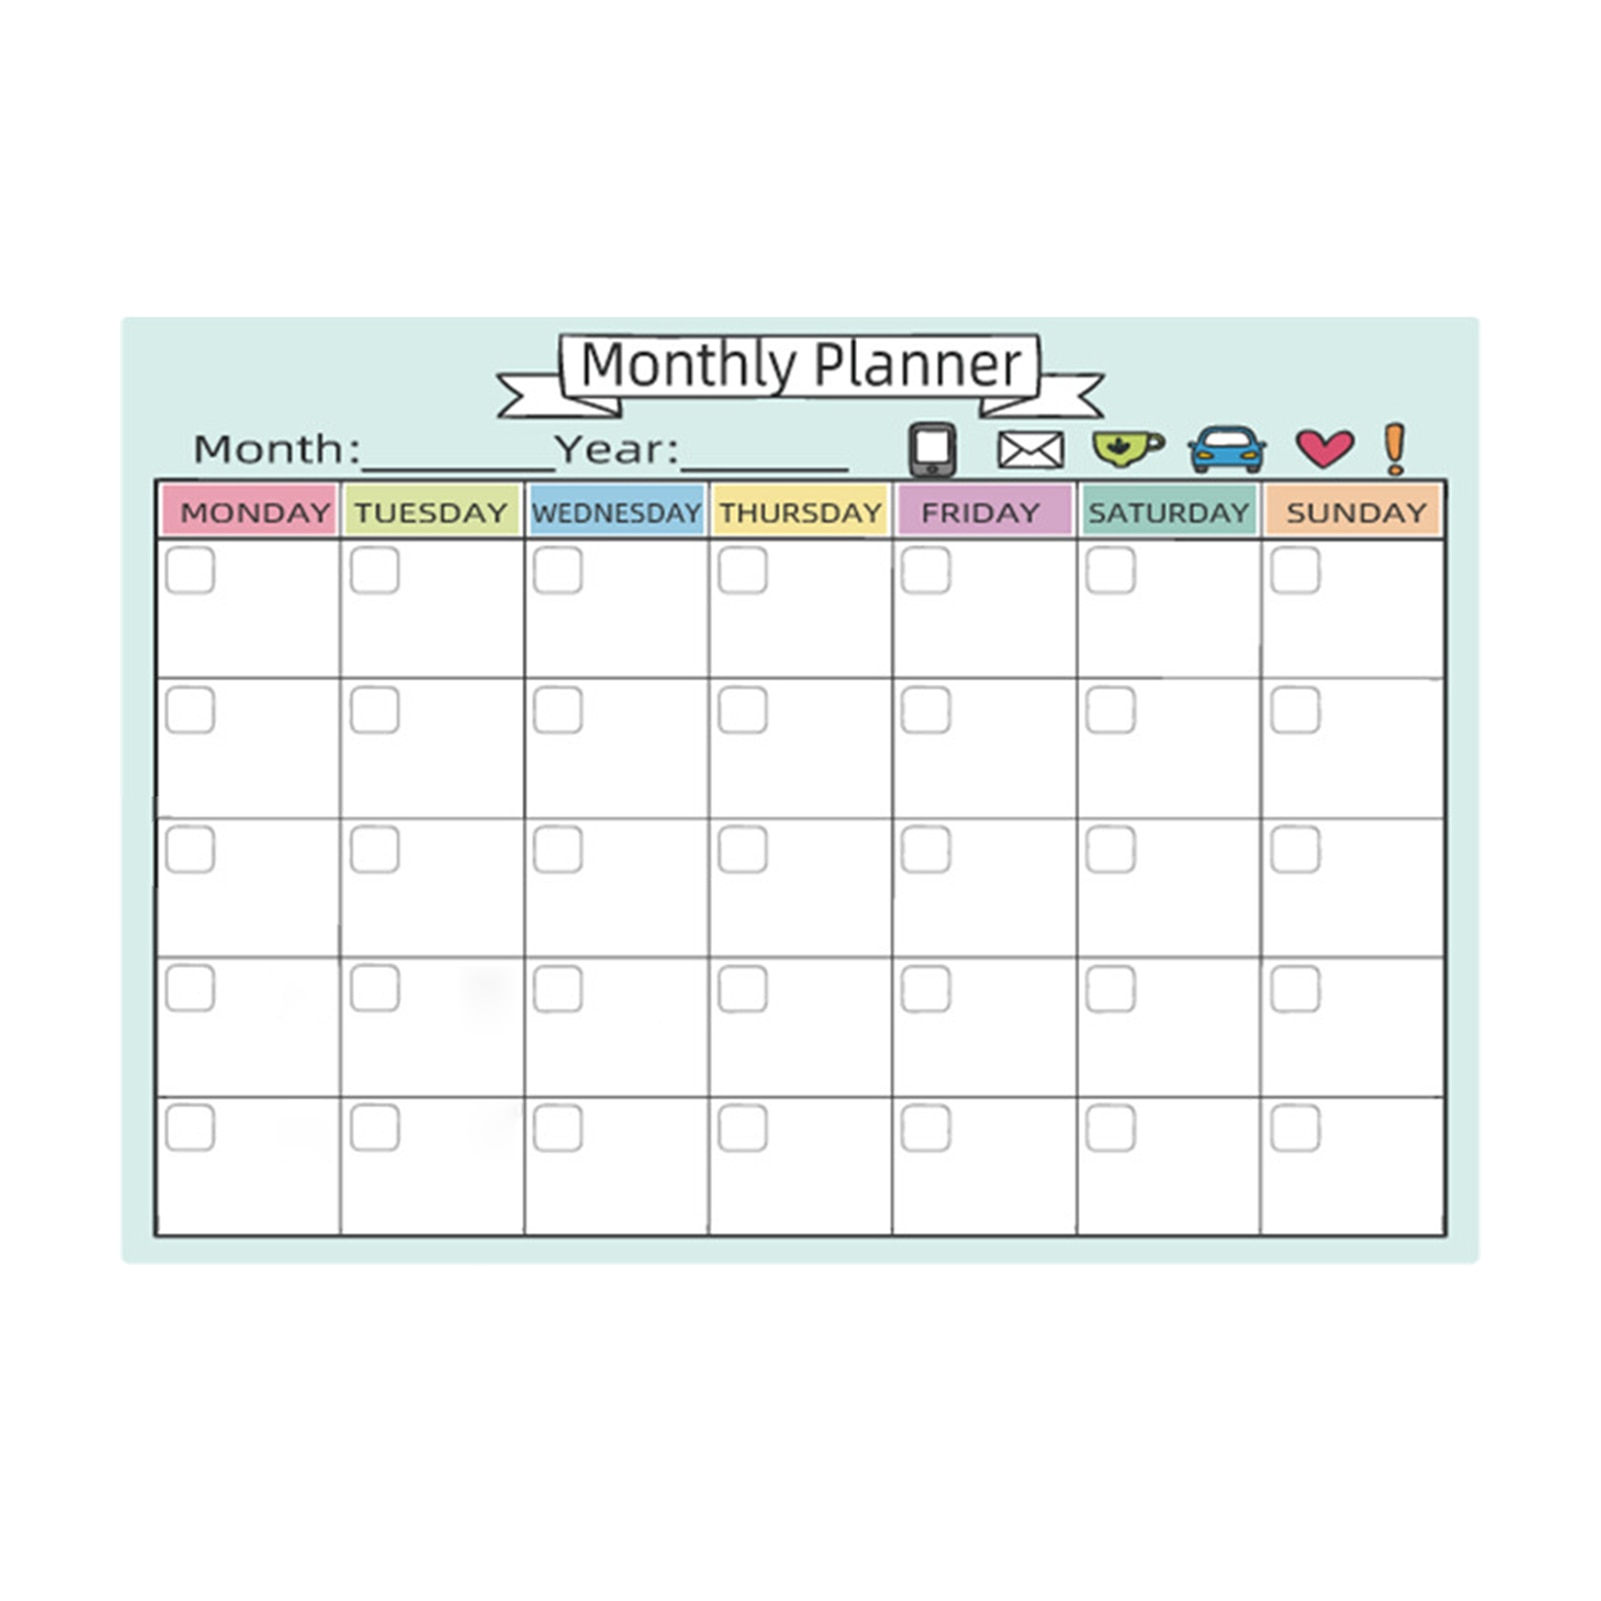 Magnetic Calendars Monthly Weekly Planner Dry Erase Calendar School/Office Supplies 2020 New